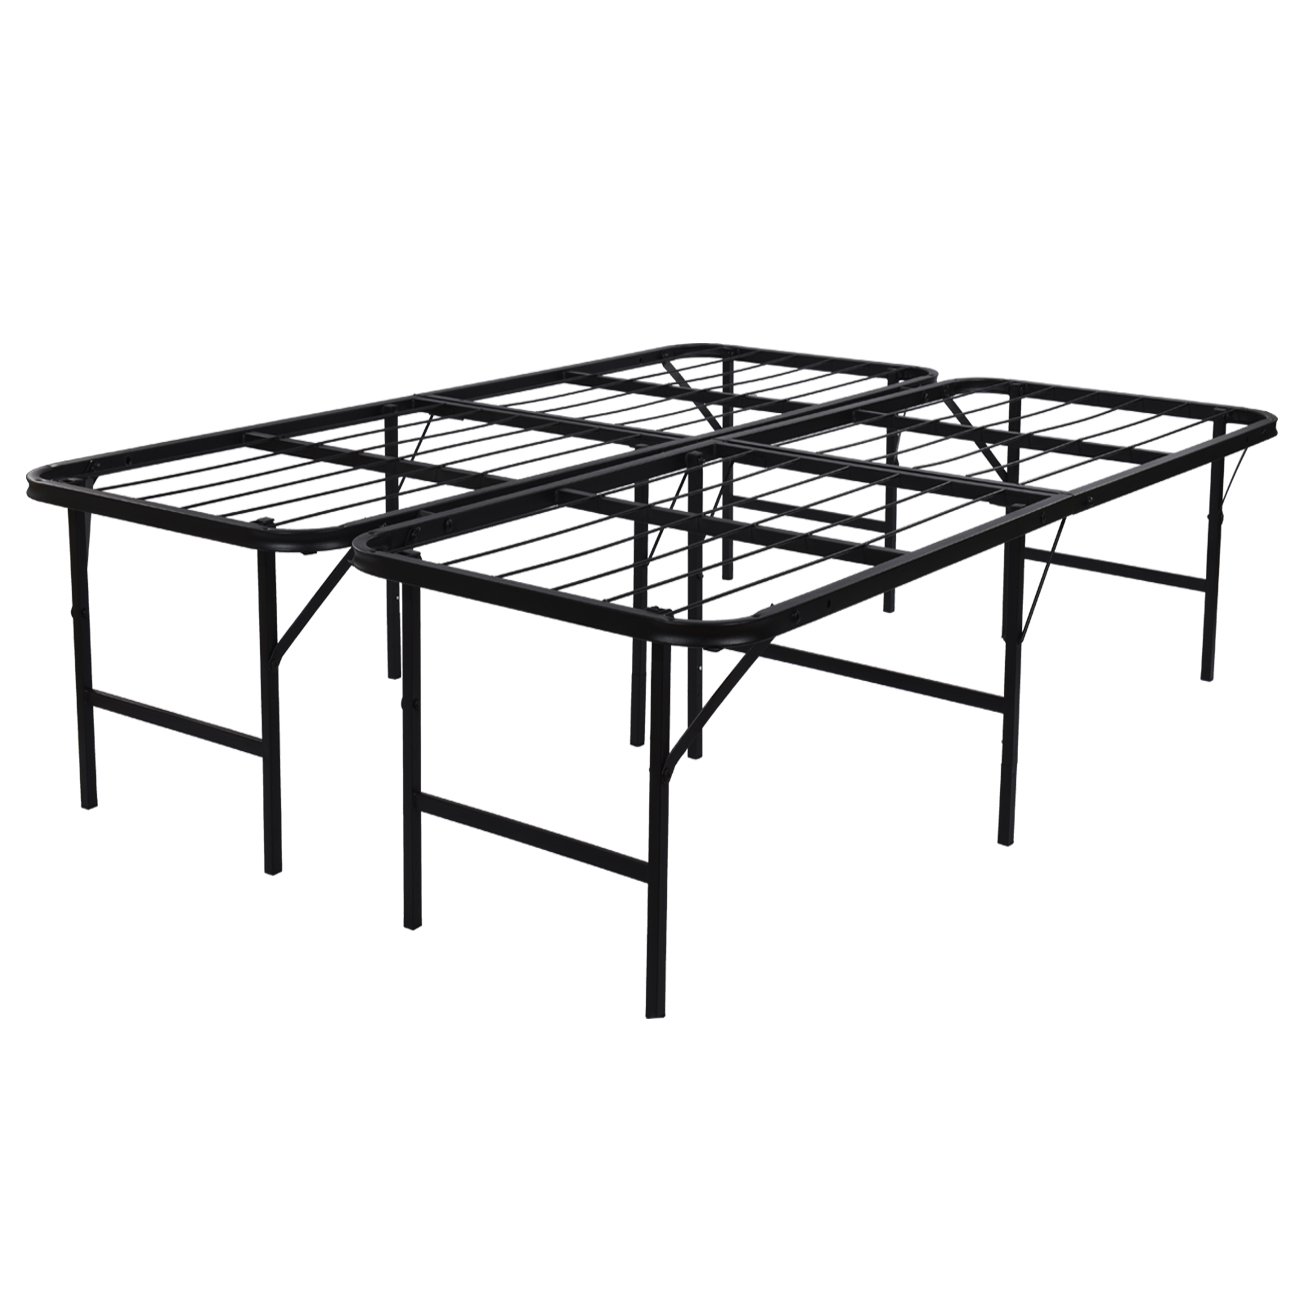 "Belleze 17"" Inch Platform Bed Frame   Box Spring Replacement   Maximum Under-Bed Storage, Twin by Belleze"